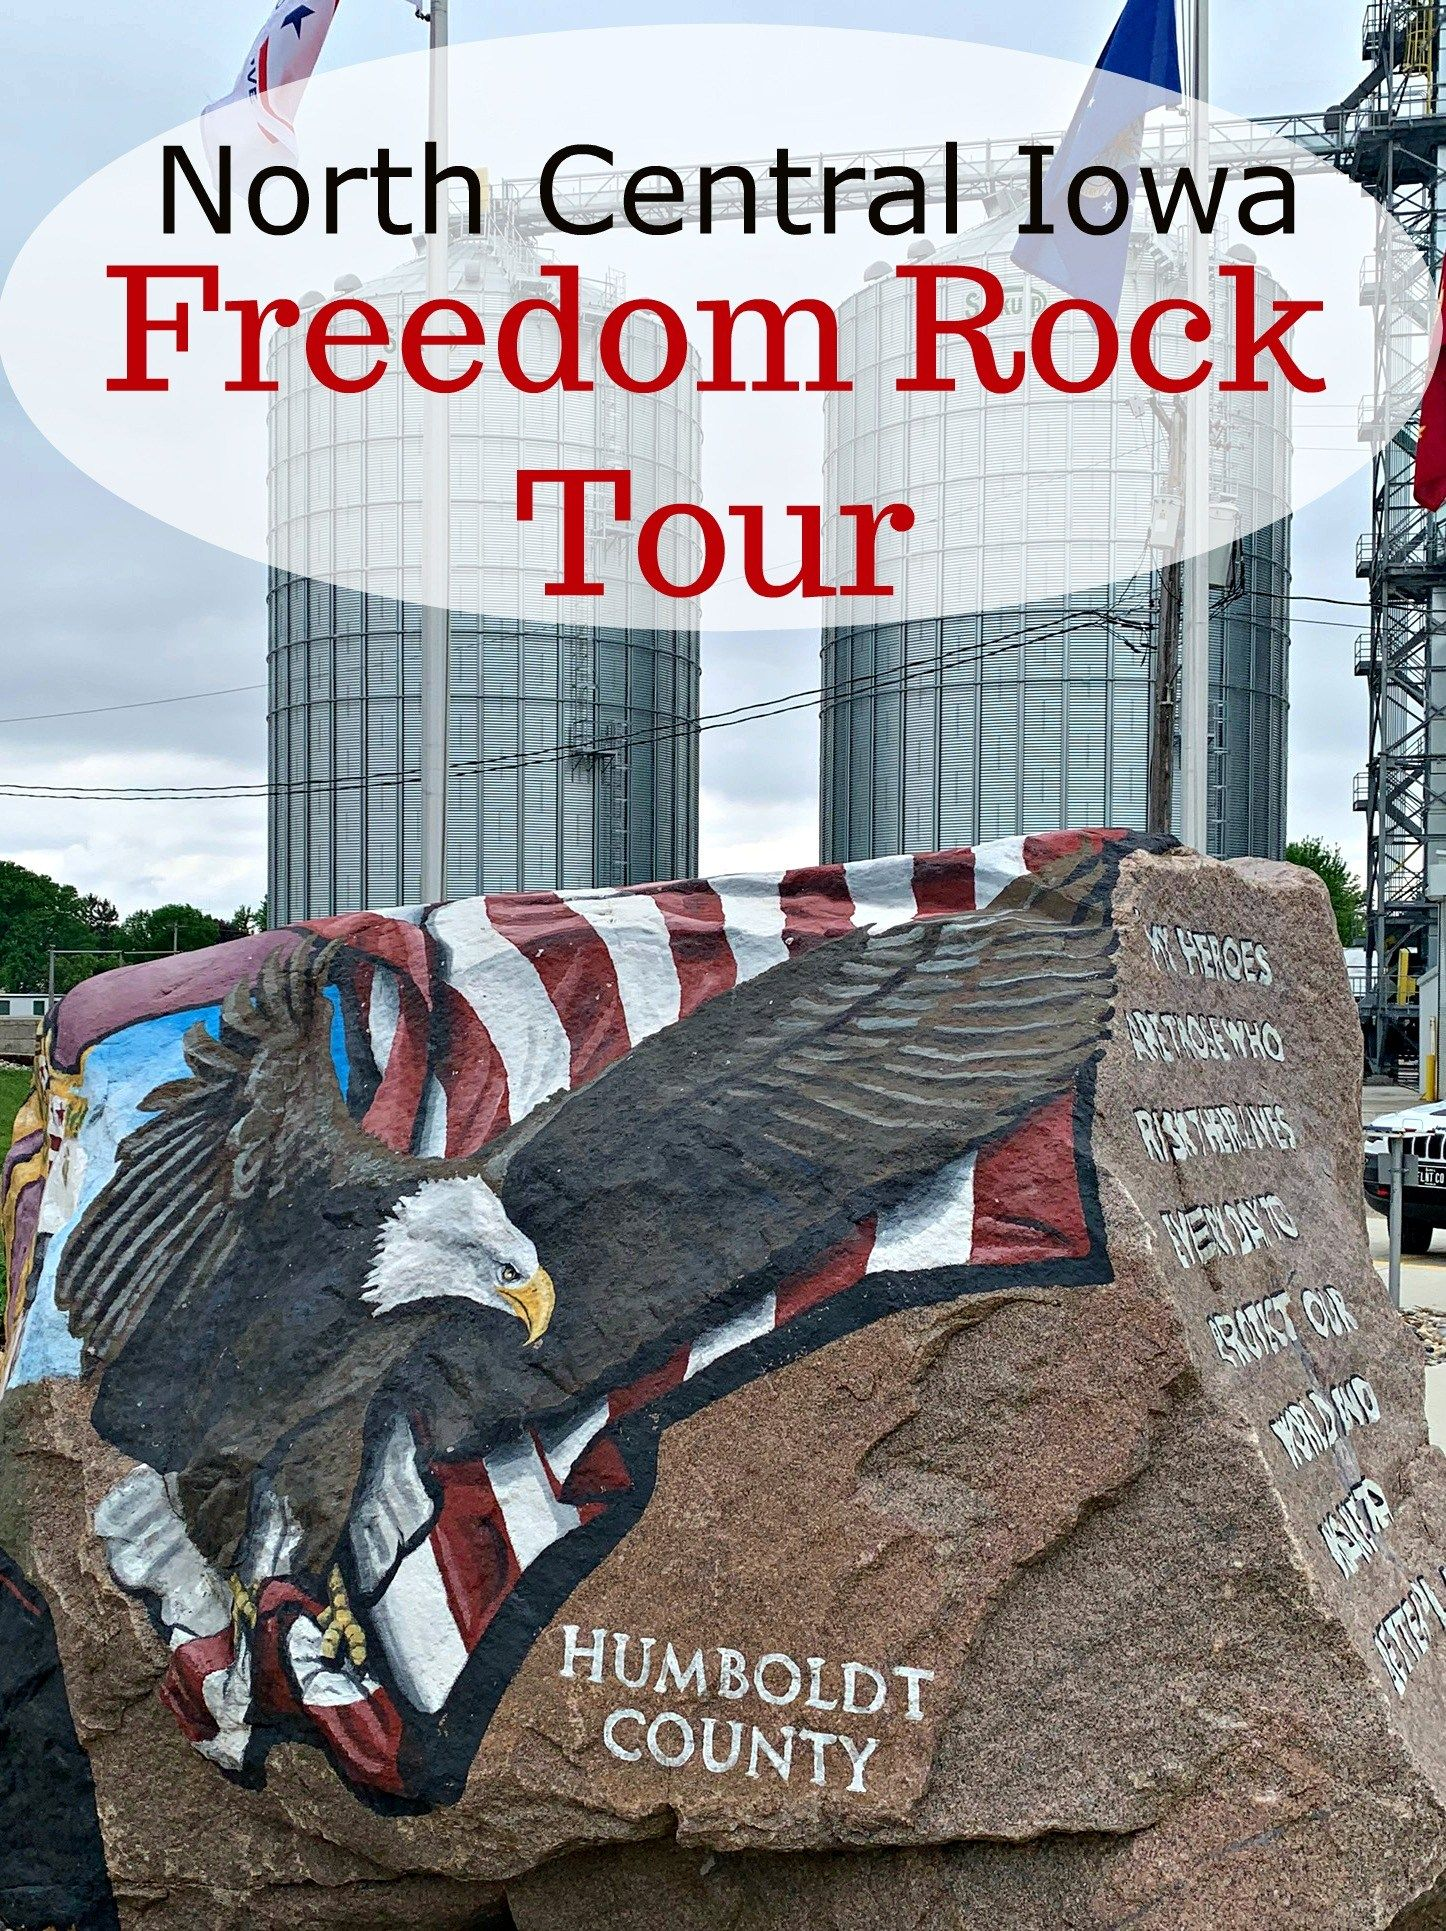 North Central Iowa Freedom Rock Tour And Other Stops Iowa Travel Midwest Travel Iowa